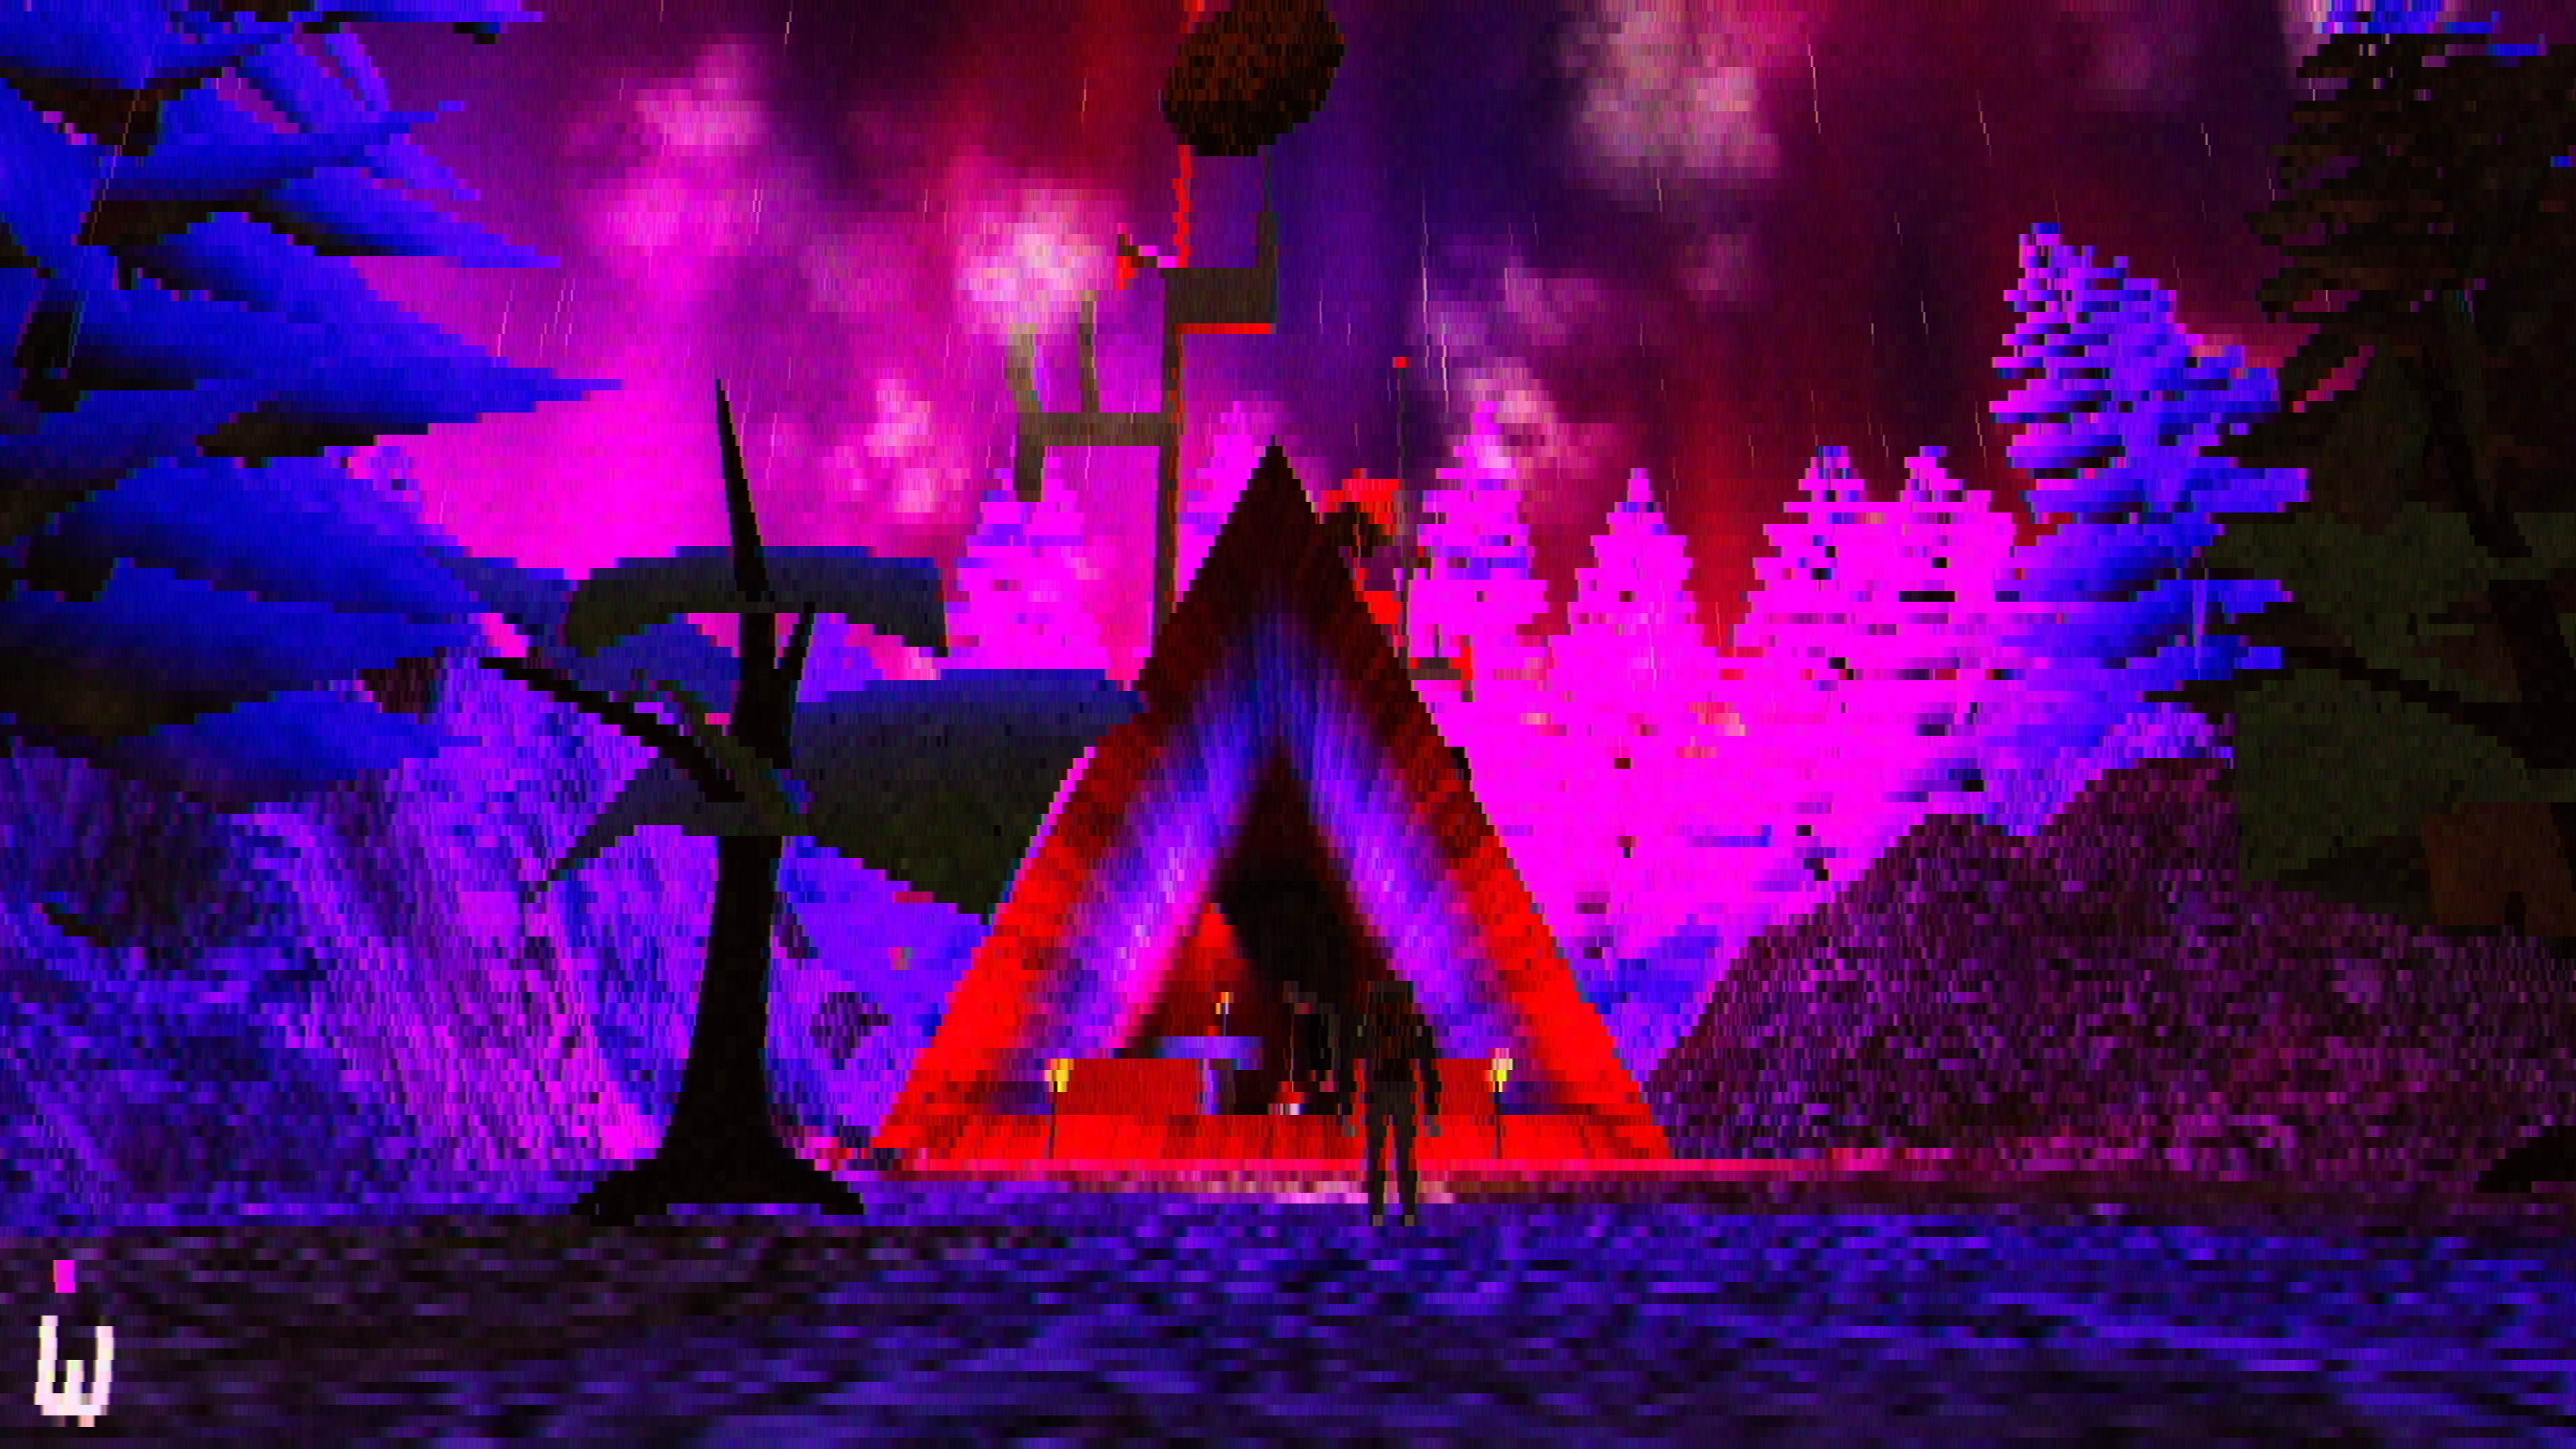 The Black Iris is a trippy and mind-blowing horror game that got under my skin